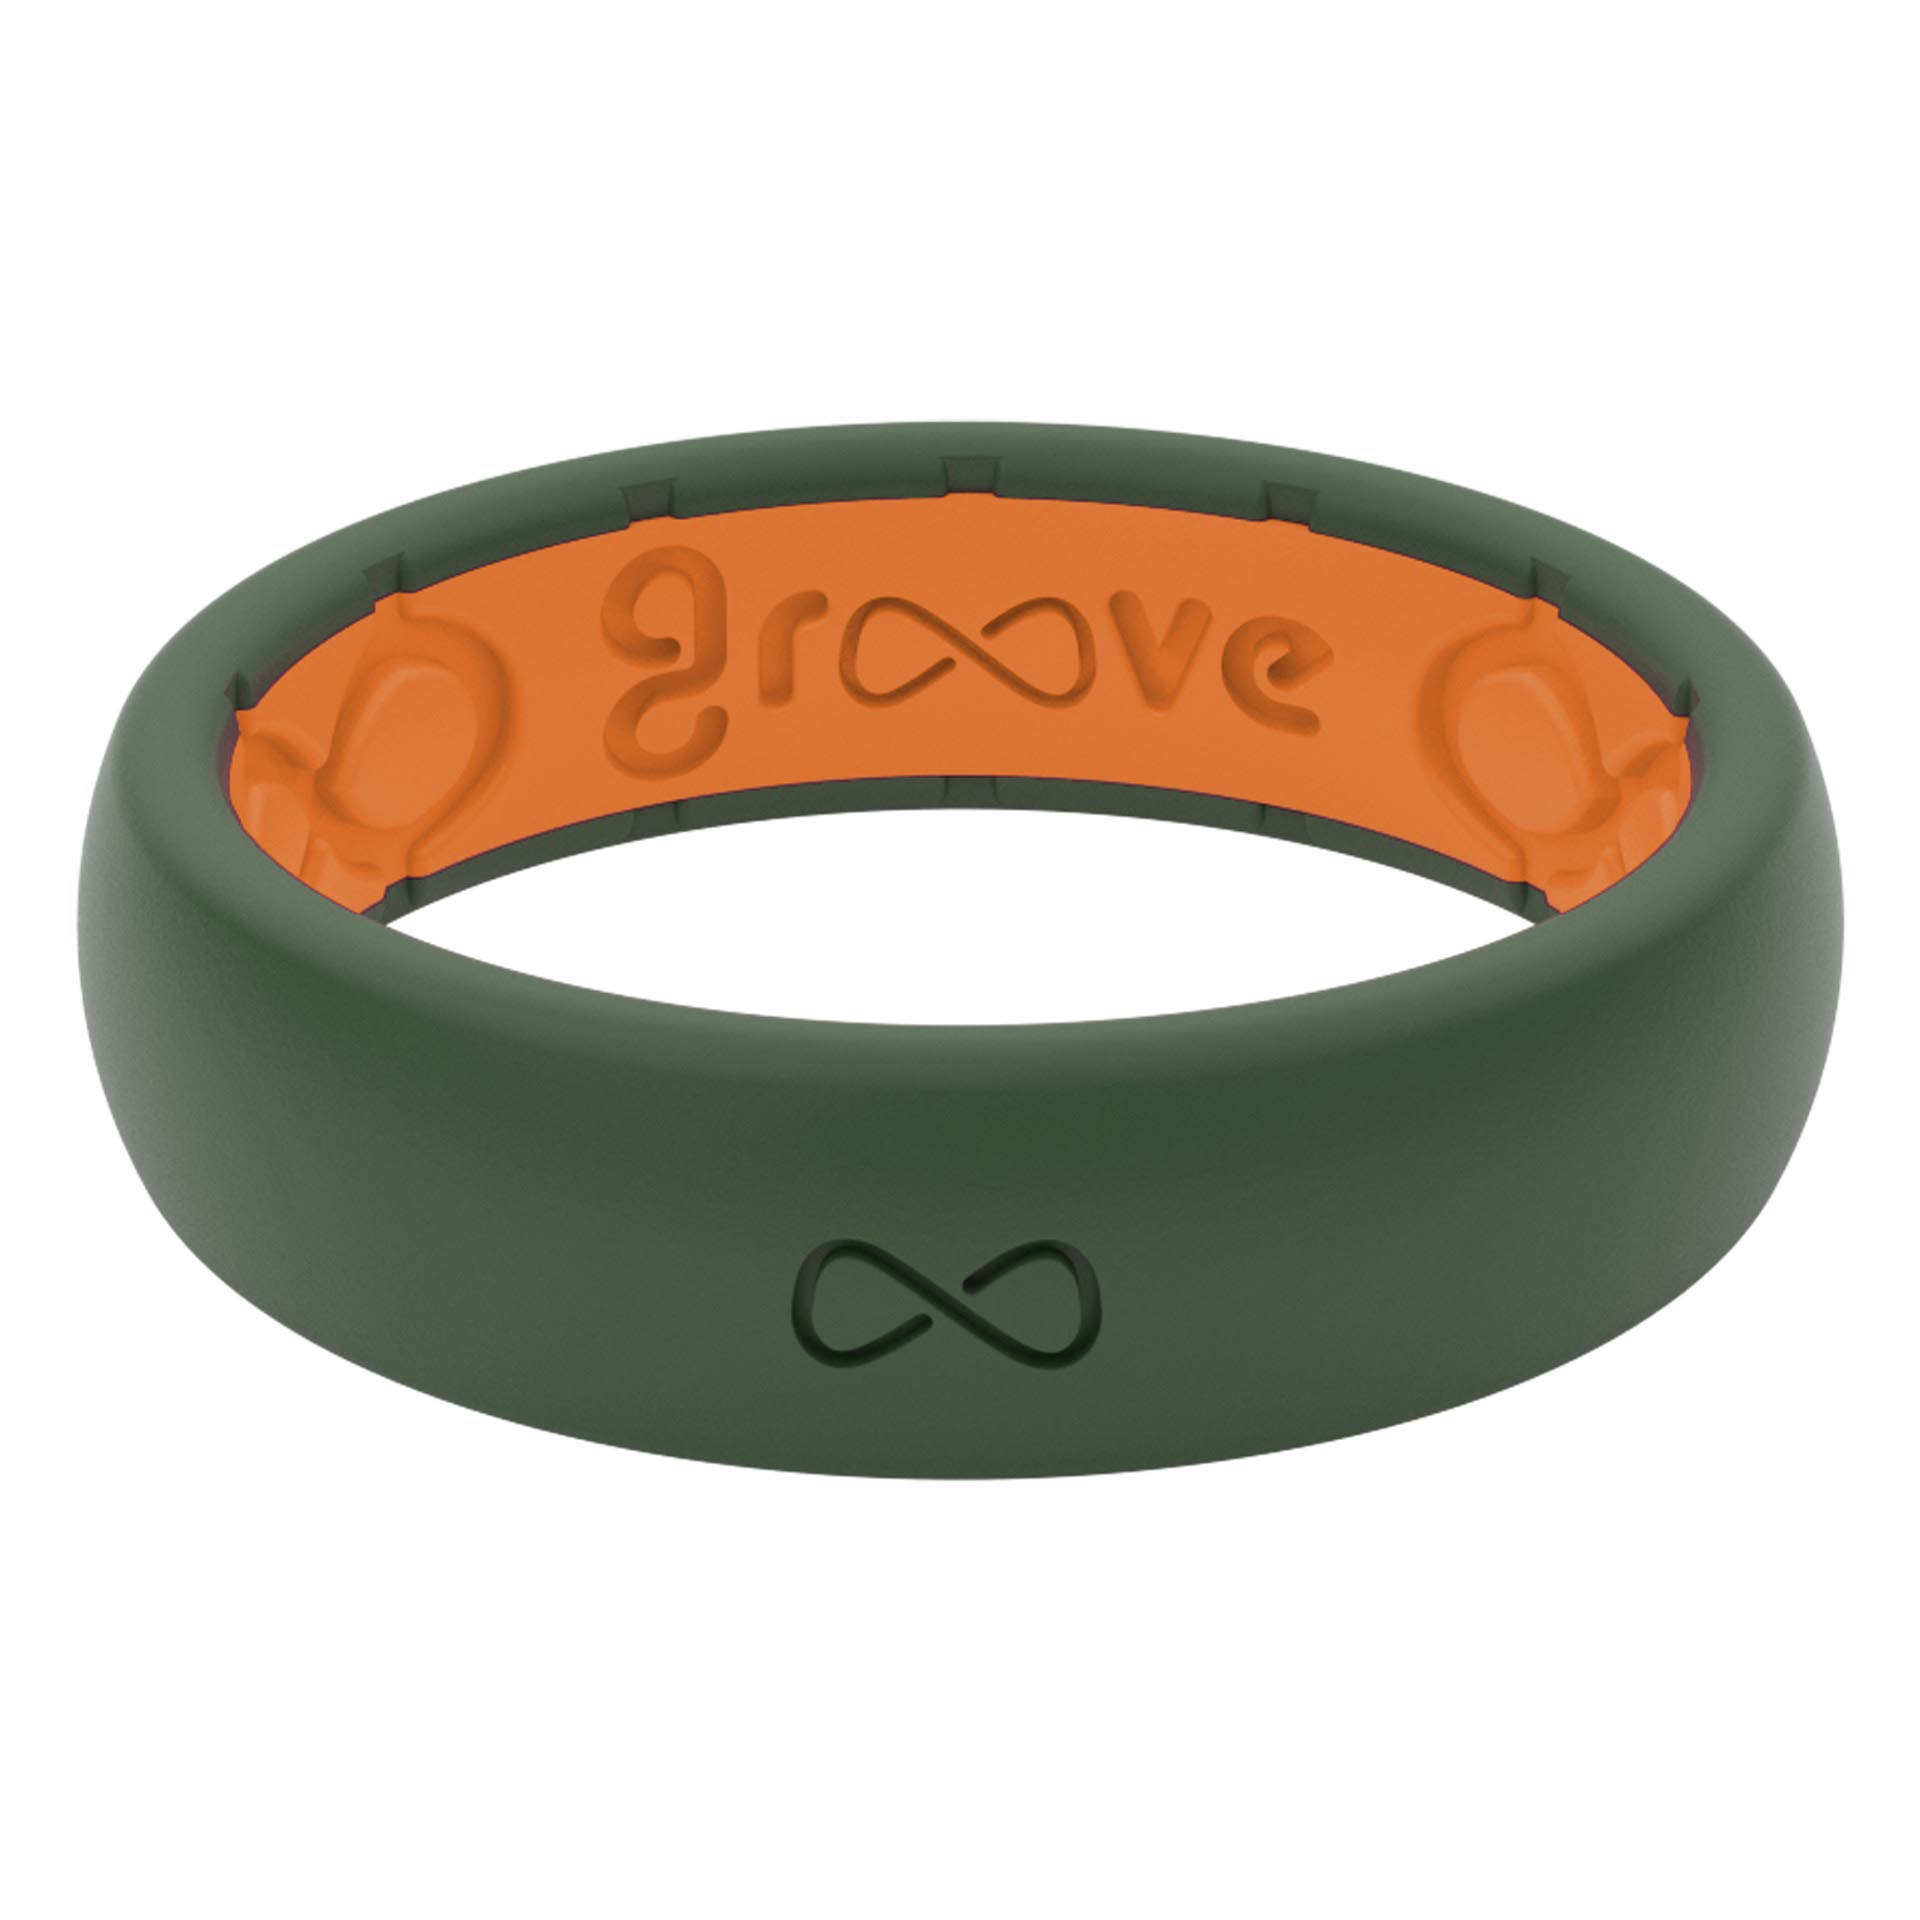 Groove Life - Silicone Ring for Men and for Women Wedding or Engagement Functional Rubber Band with, Breathable Grooves, Comfort Fit, and Durability - Thin Solid Moss Green Size 4